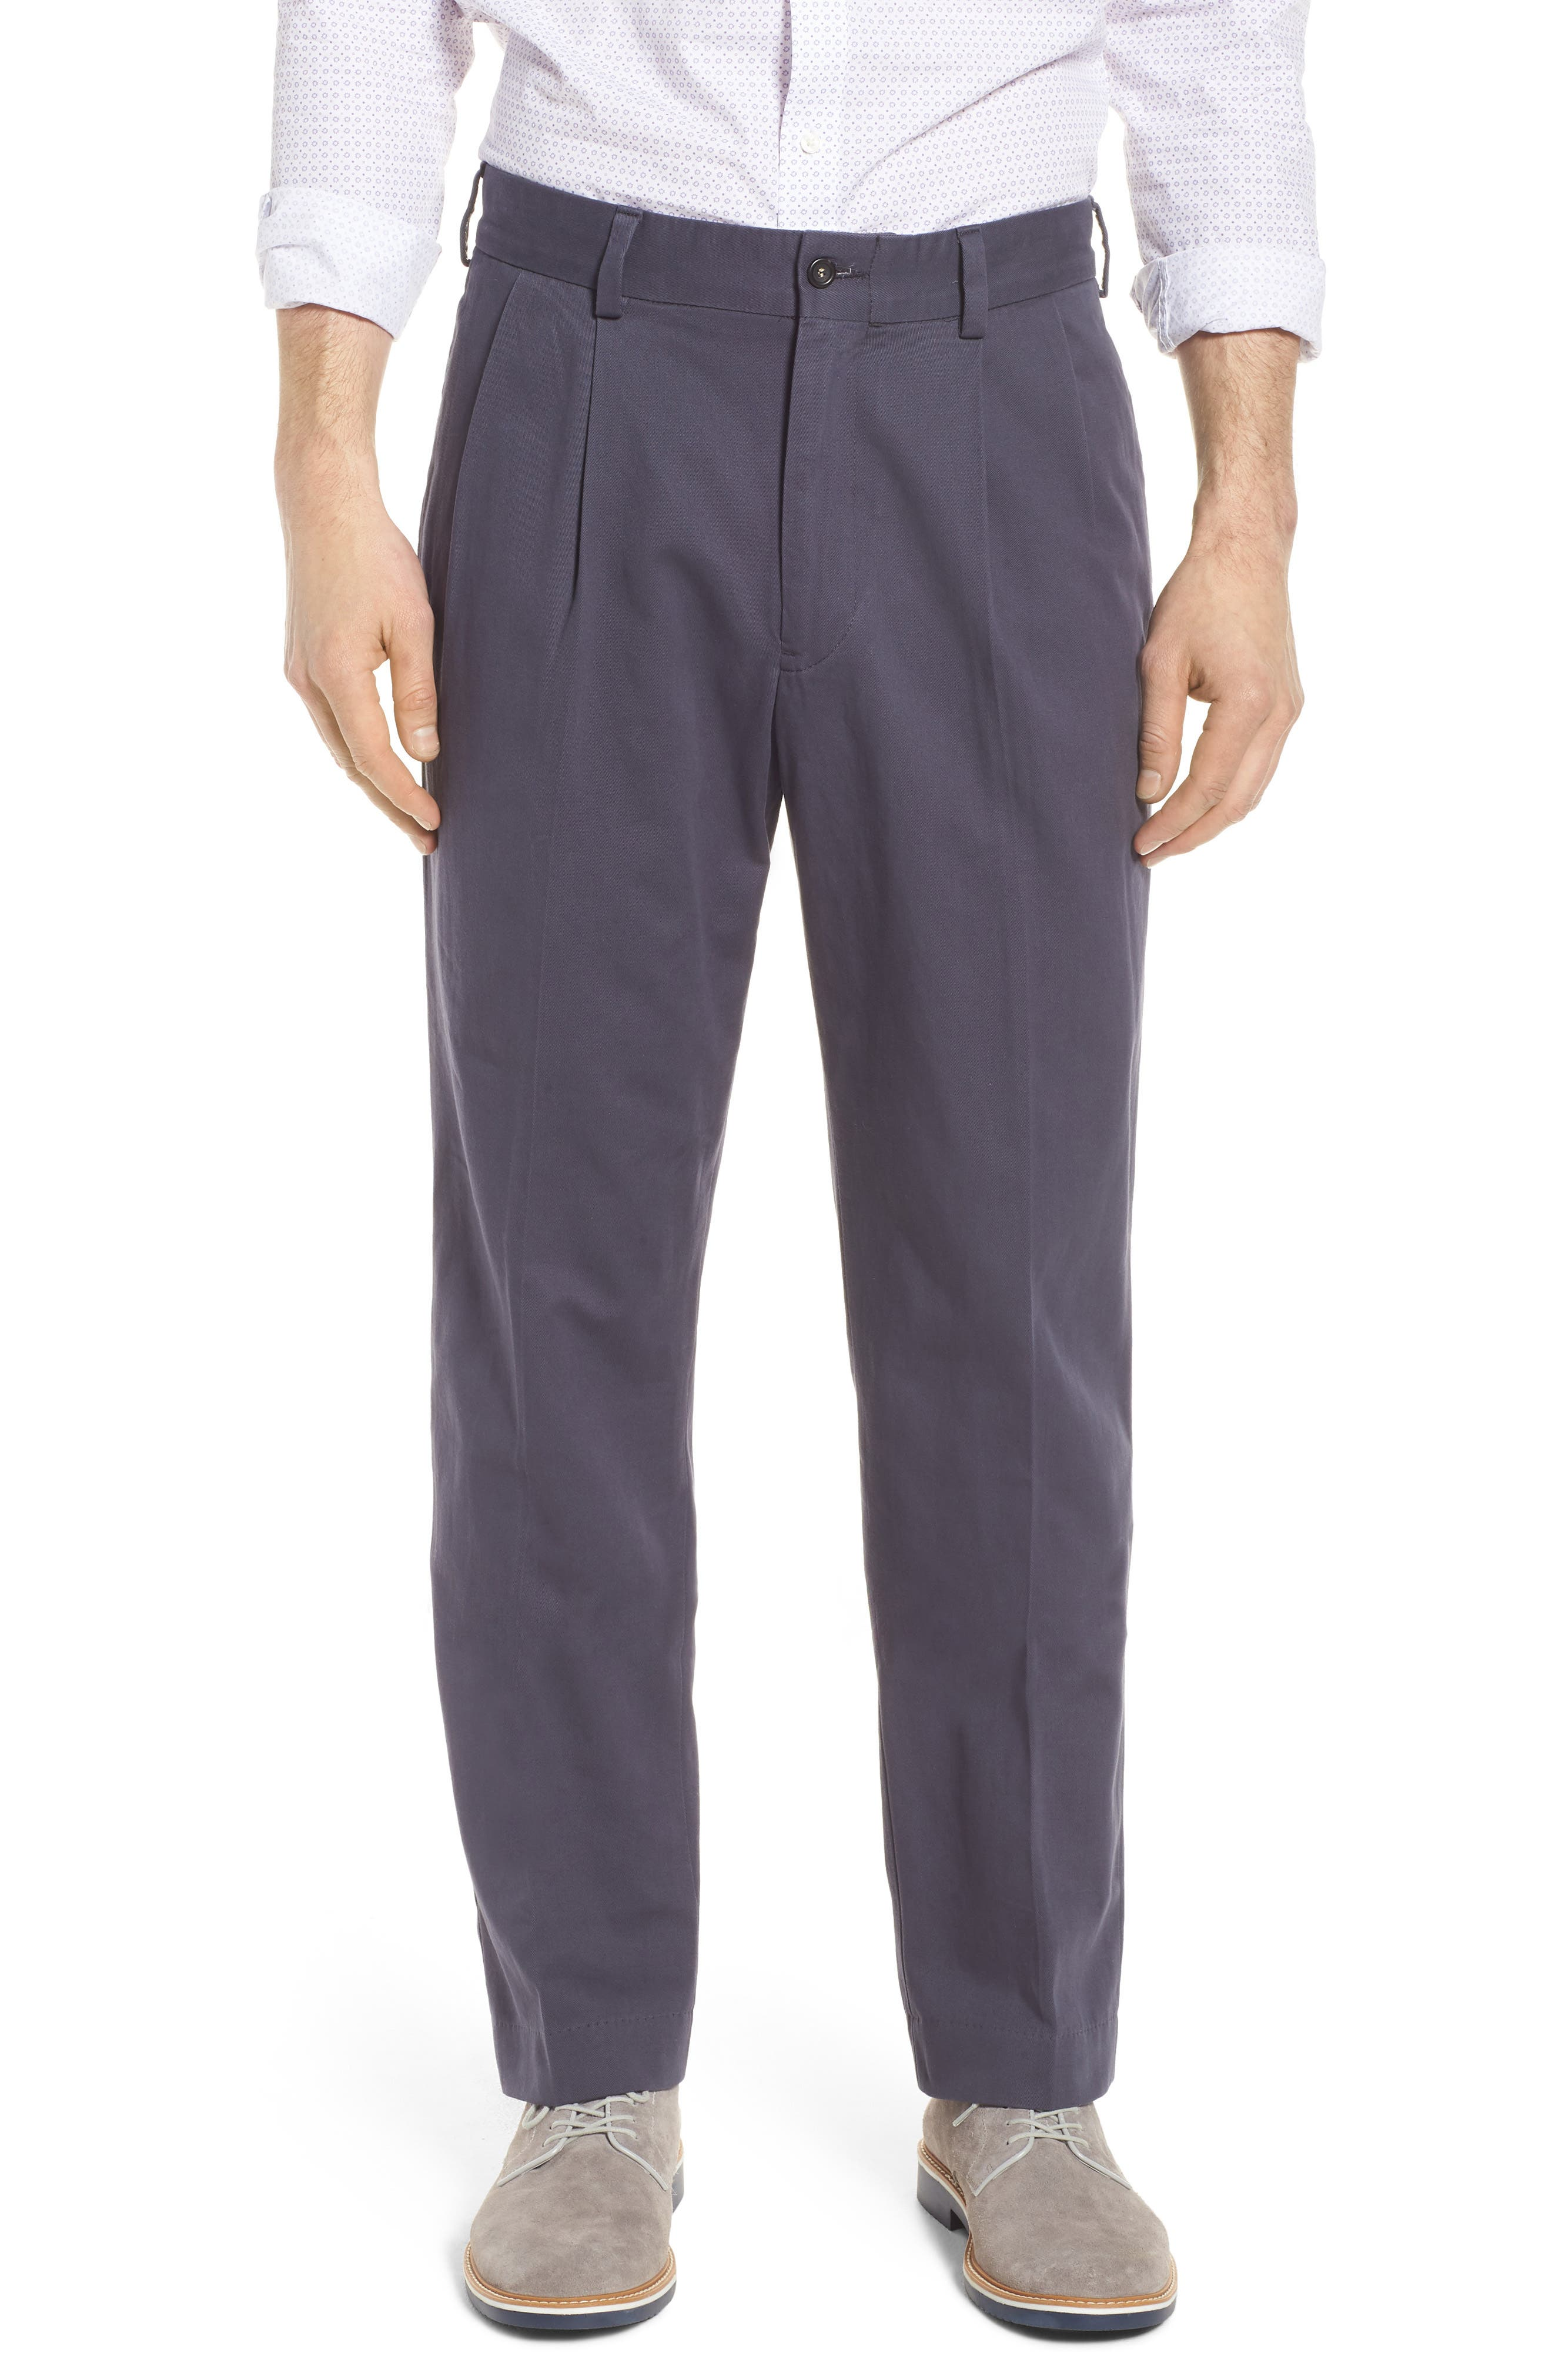 M2 Classic Fit Vintage Twill Pleated Pants,                         Main,                         color, 410